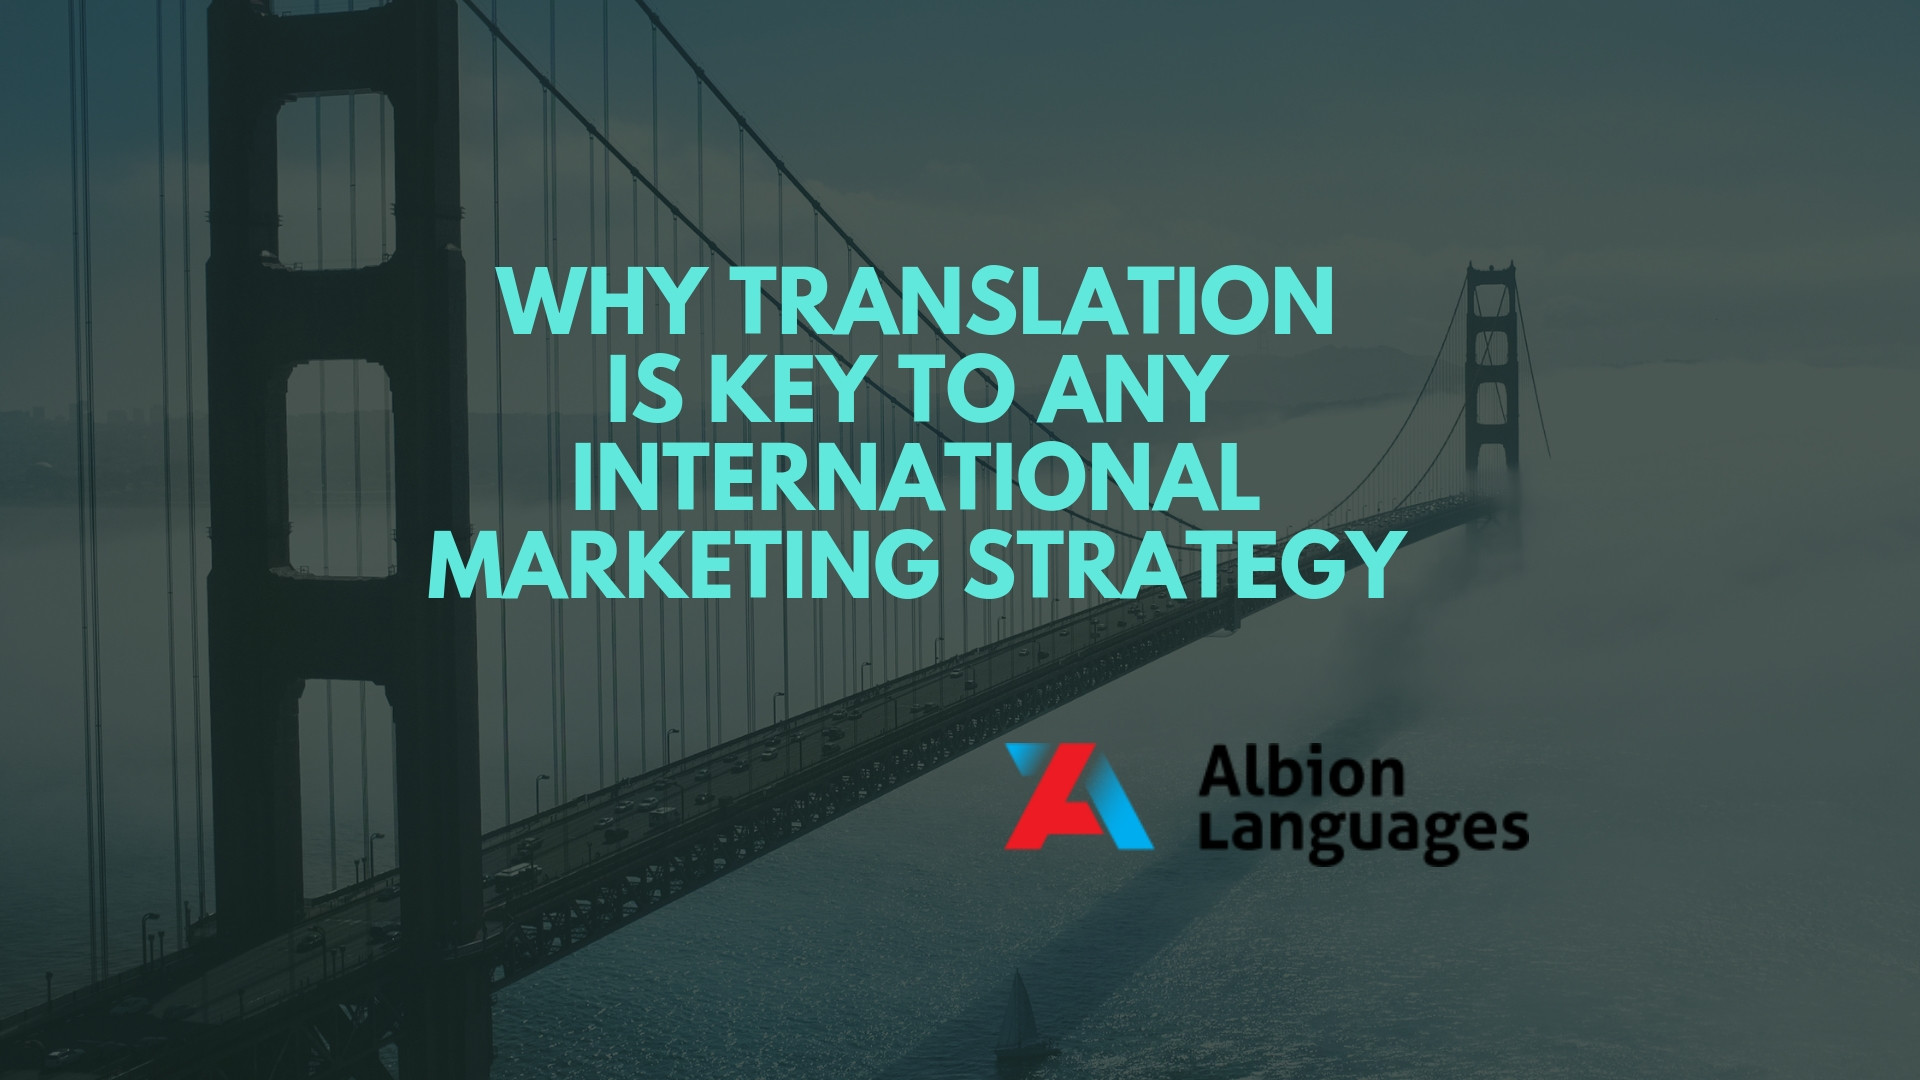 Translation is key to international marketing